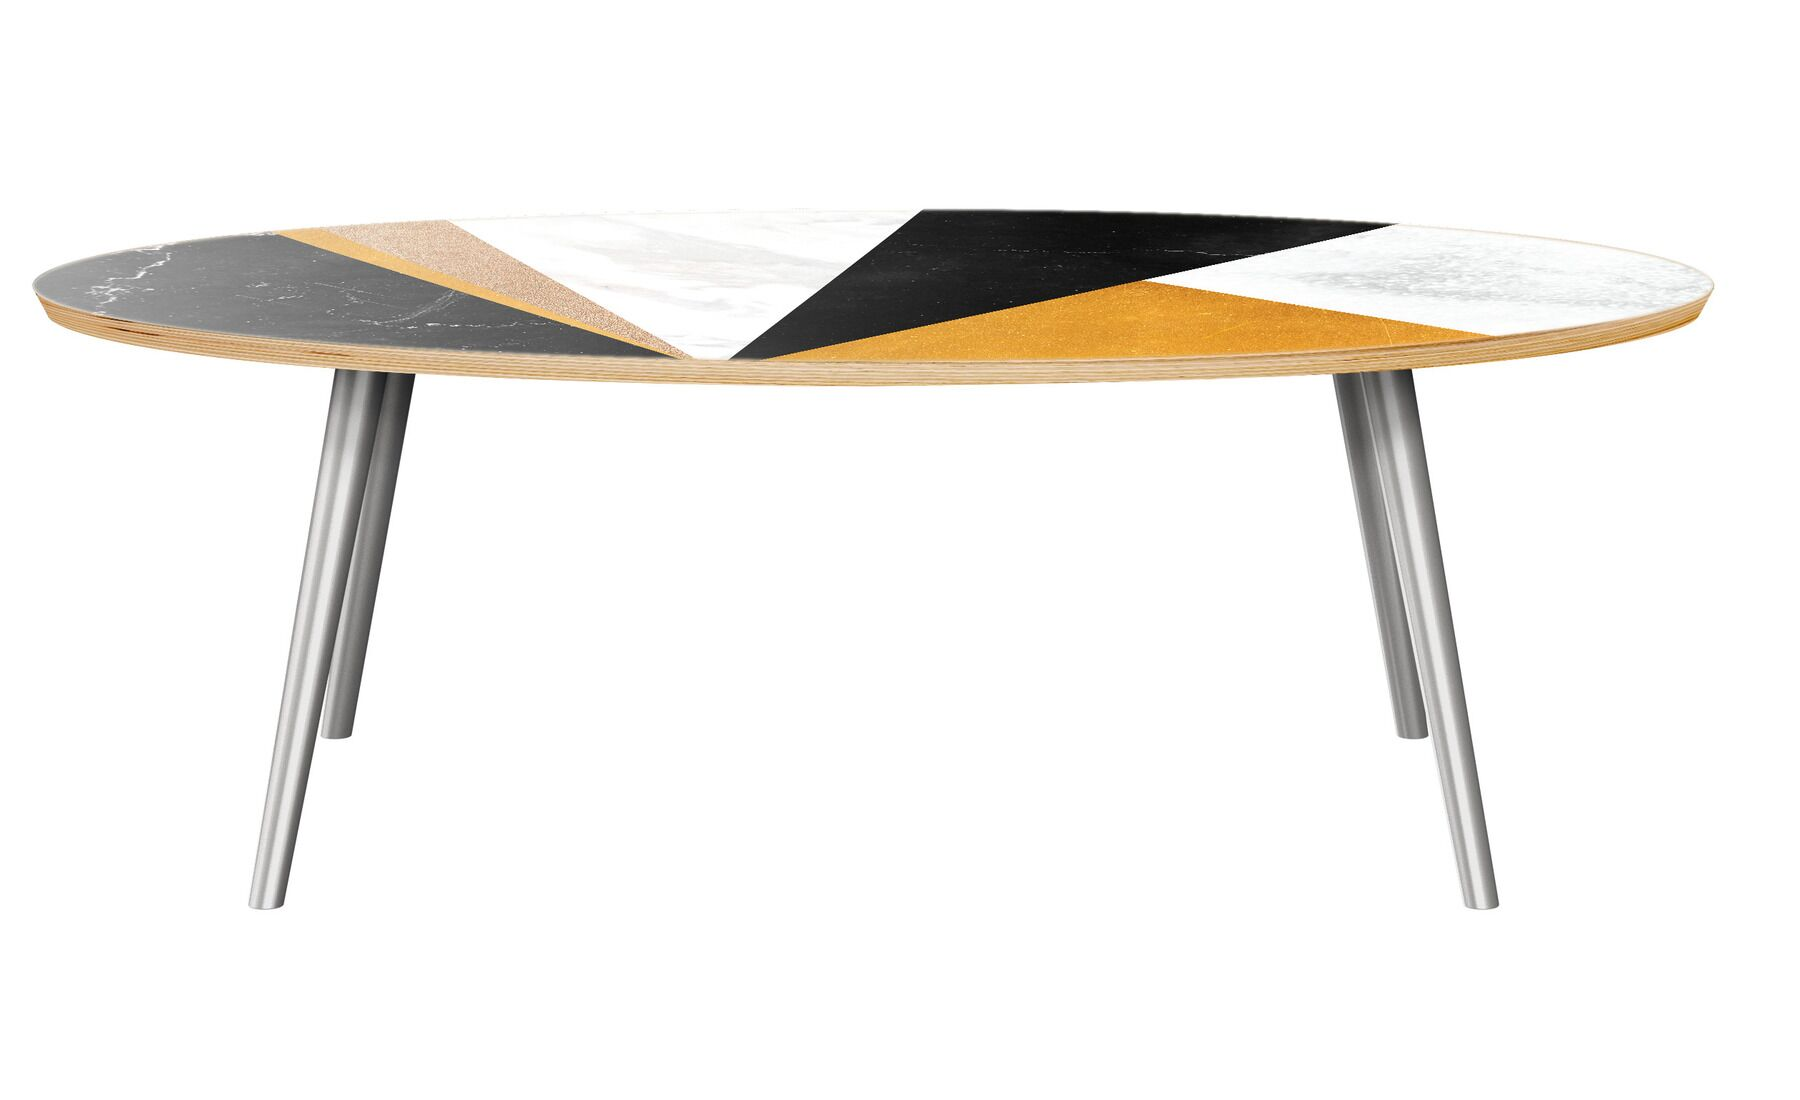 Guthridge Coffee Table Table Top Color: Natural/Black, Table Base Color: Chrome